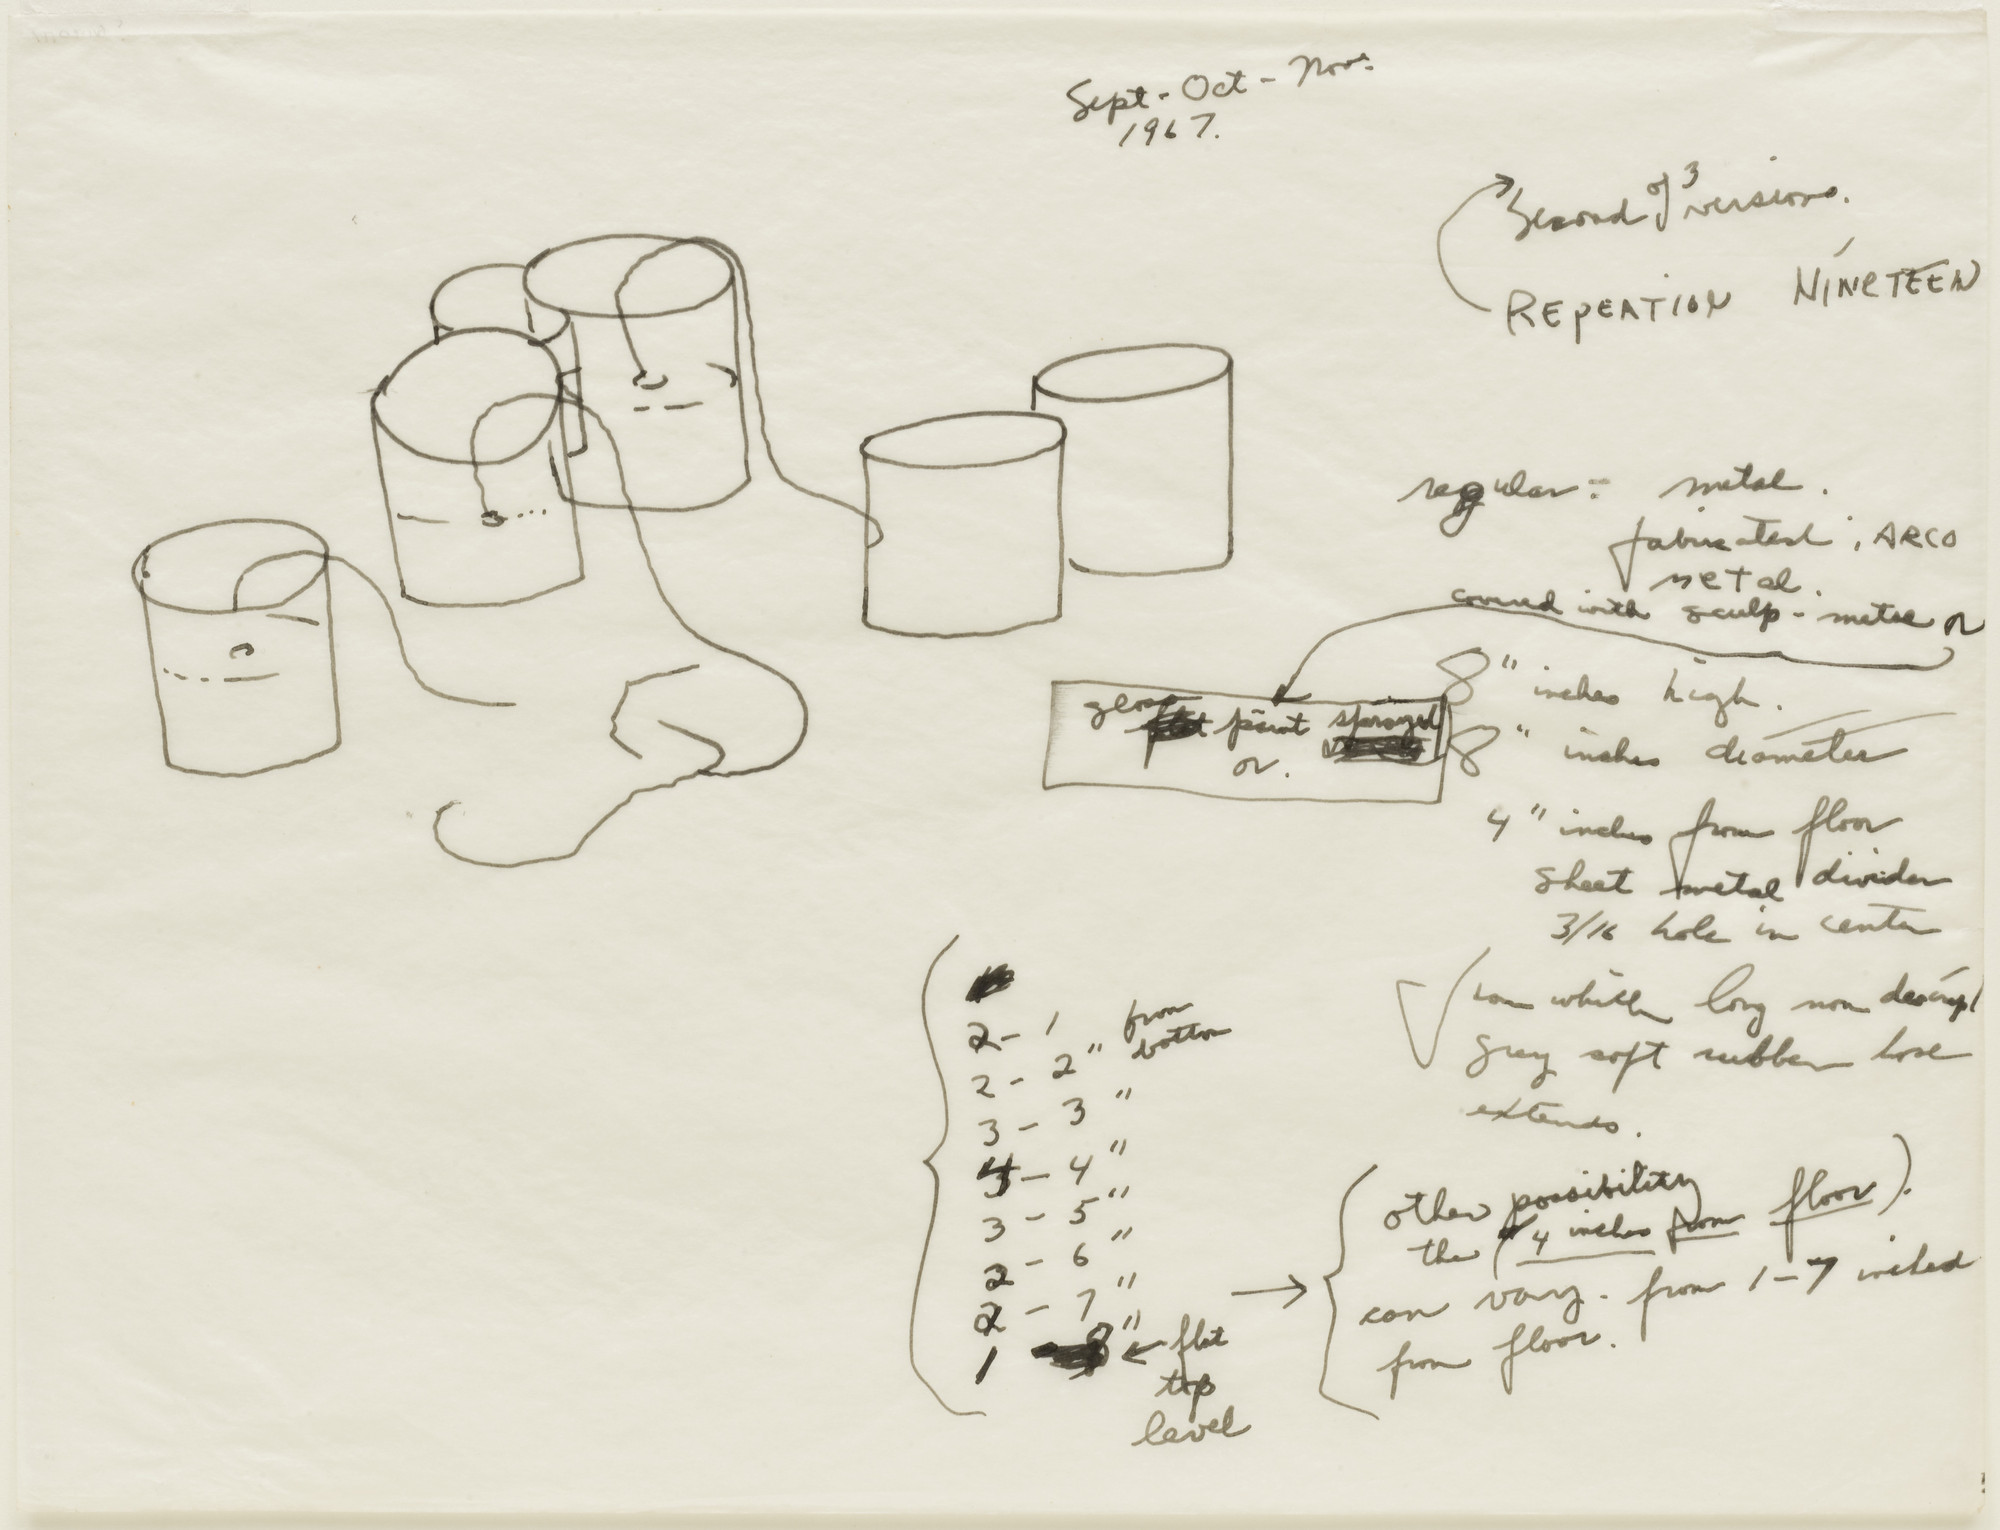 Eva Hesse. Repetition Nineteen, Second of 3 versions. 1967